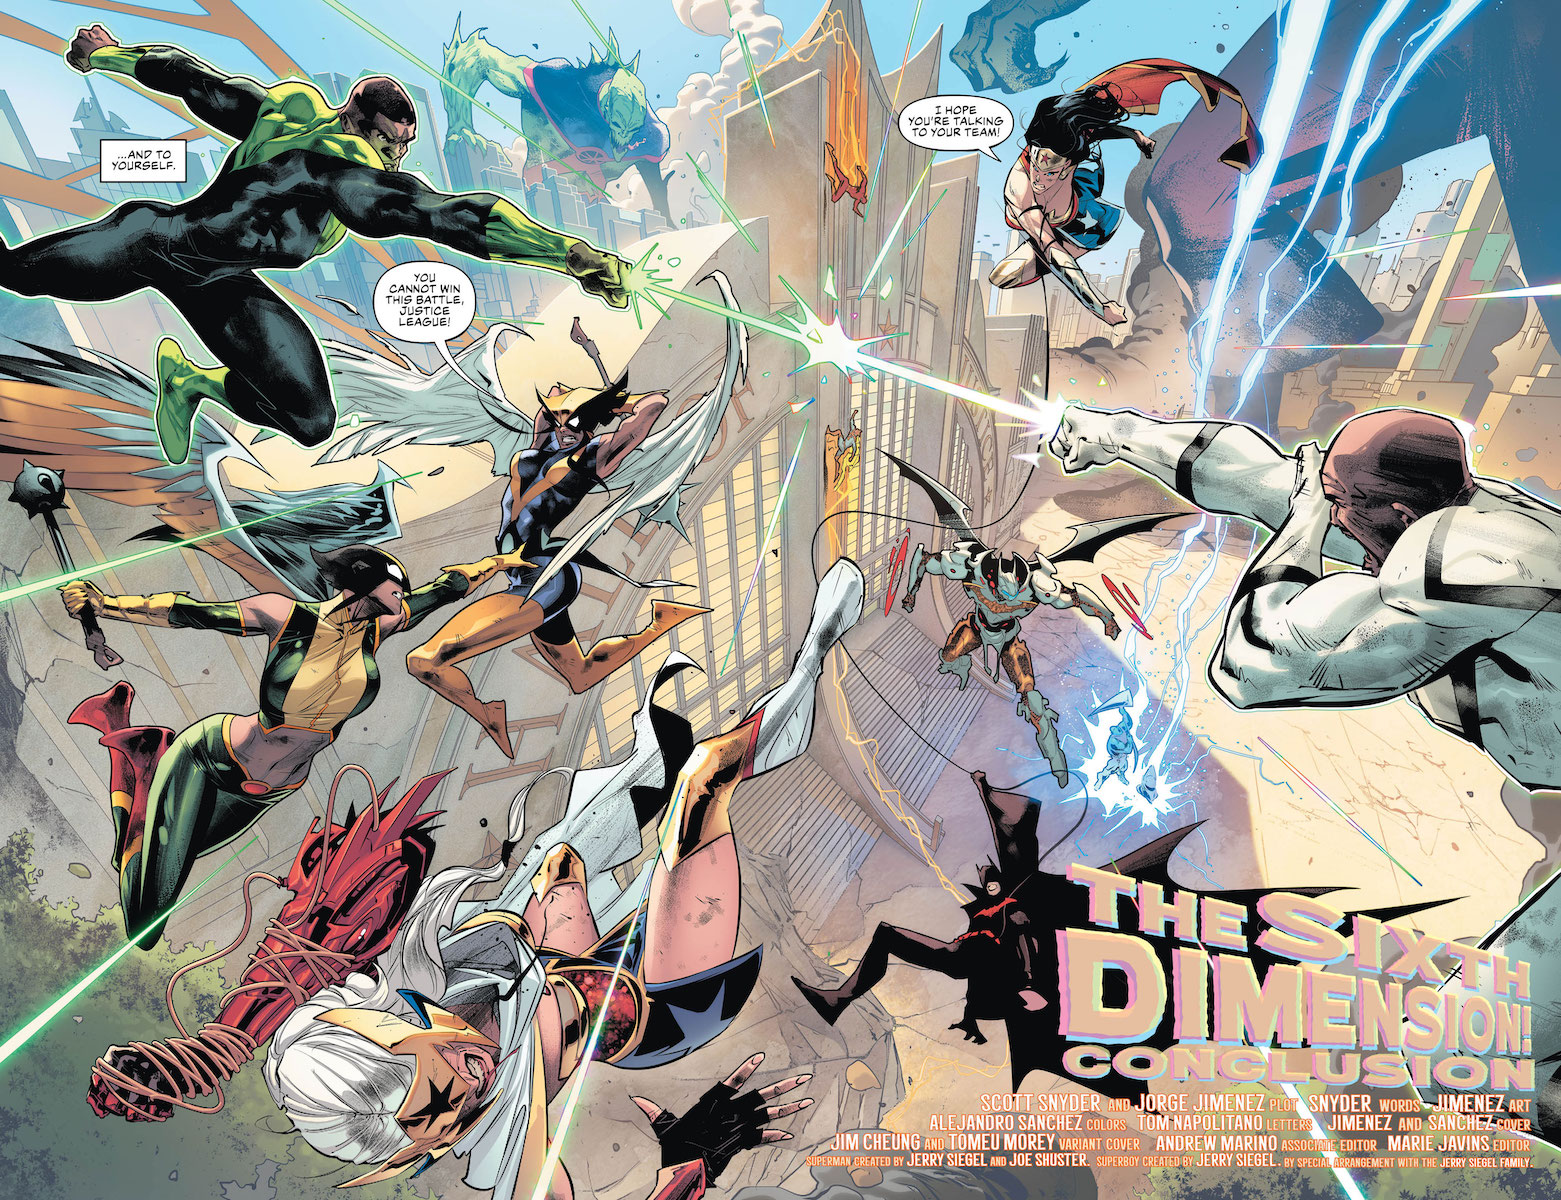 Justice League vs Justice League Battle Teased In Justice League #25 Preview Art